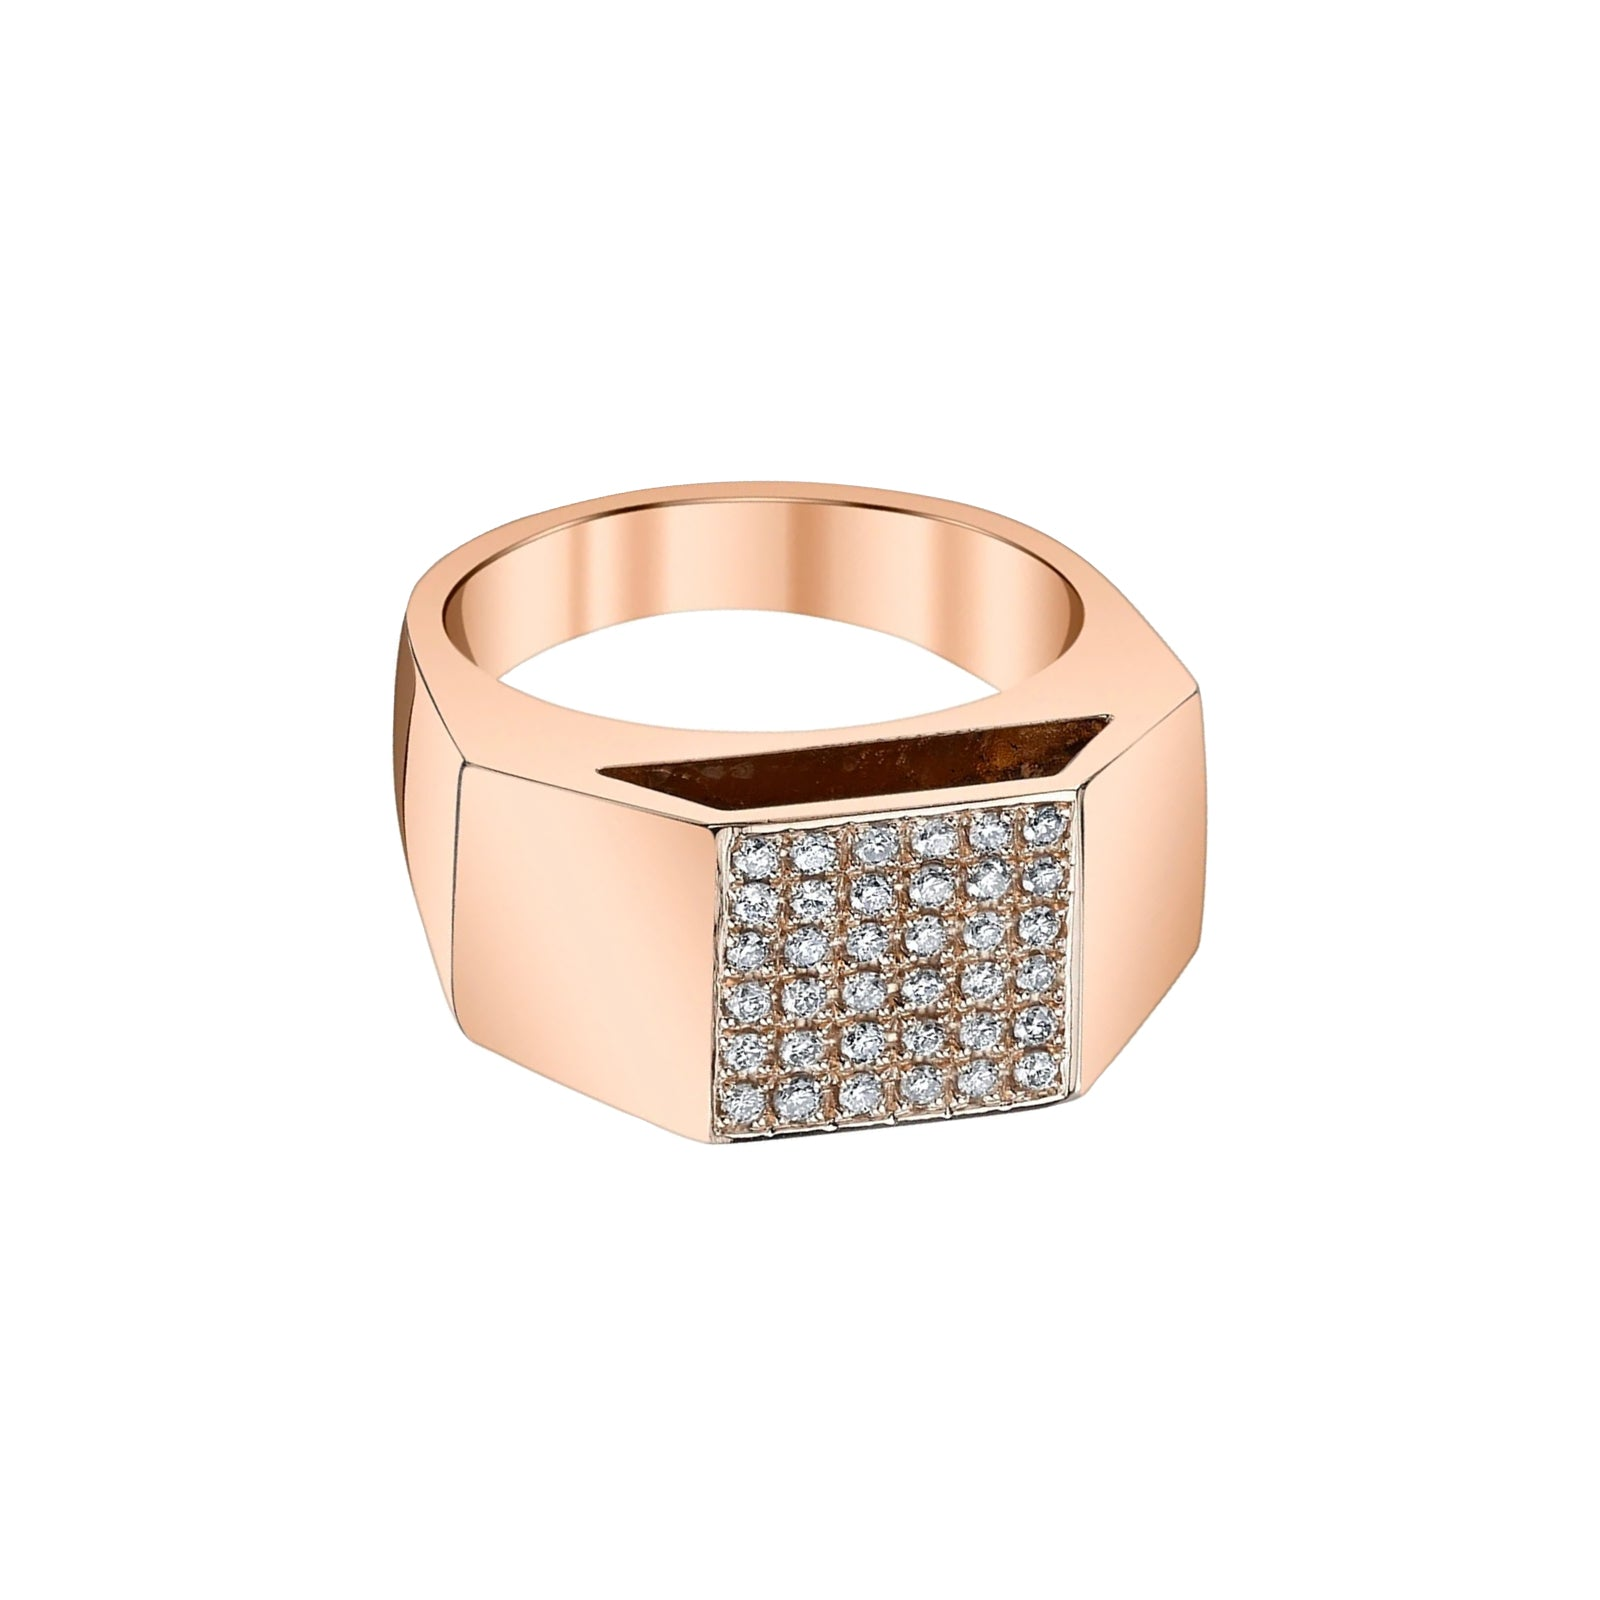 Gabriela Artigas & Company Cut Out Diamond Pedestal Ring - Rose Gold - Rings - Broken English Jewelry